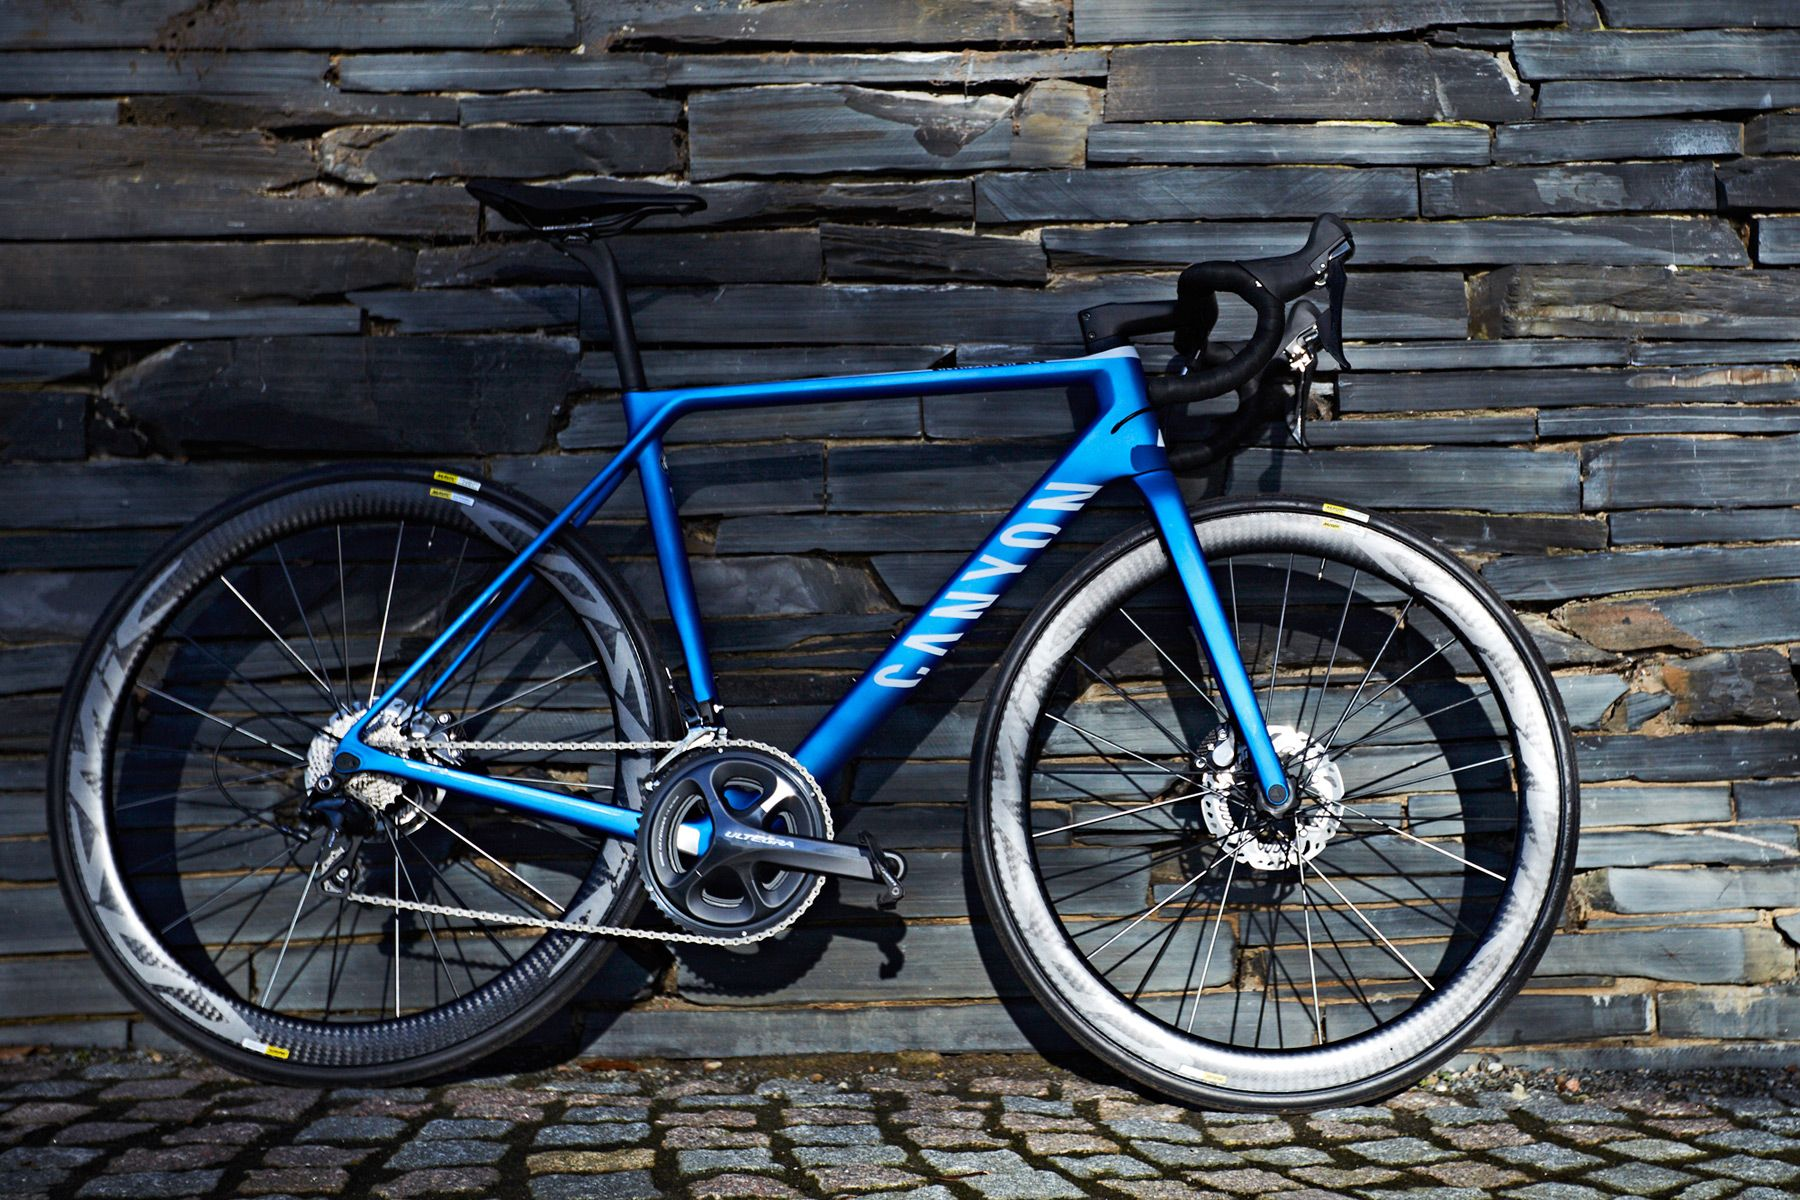 Pin by Christopher Packer on Road  CX Bikes  22a81e4045a04